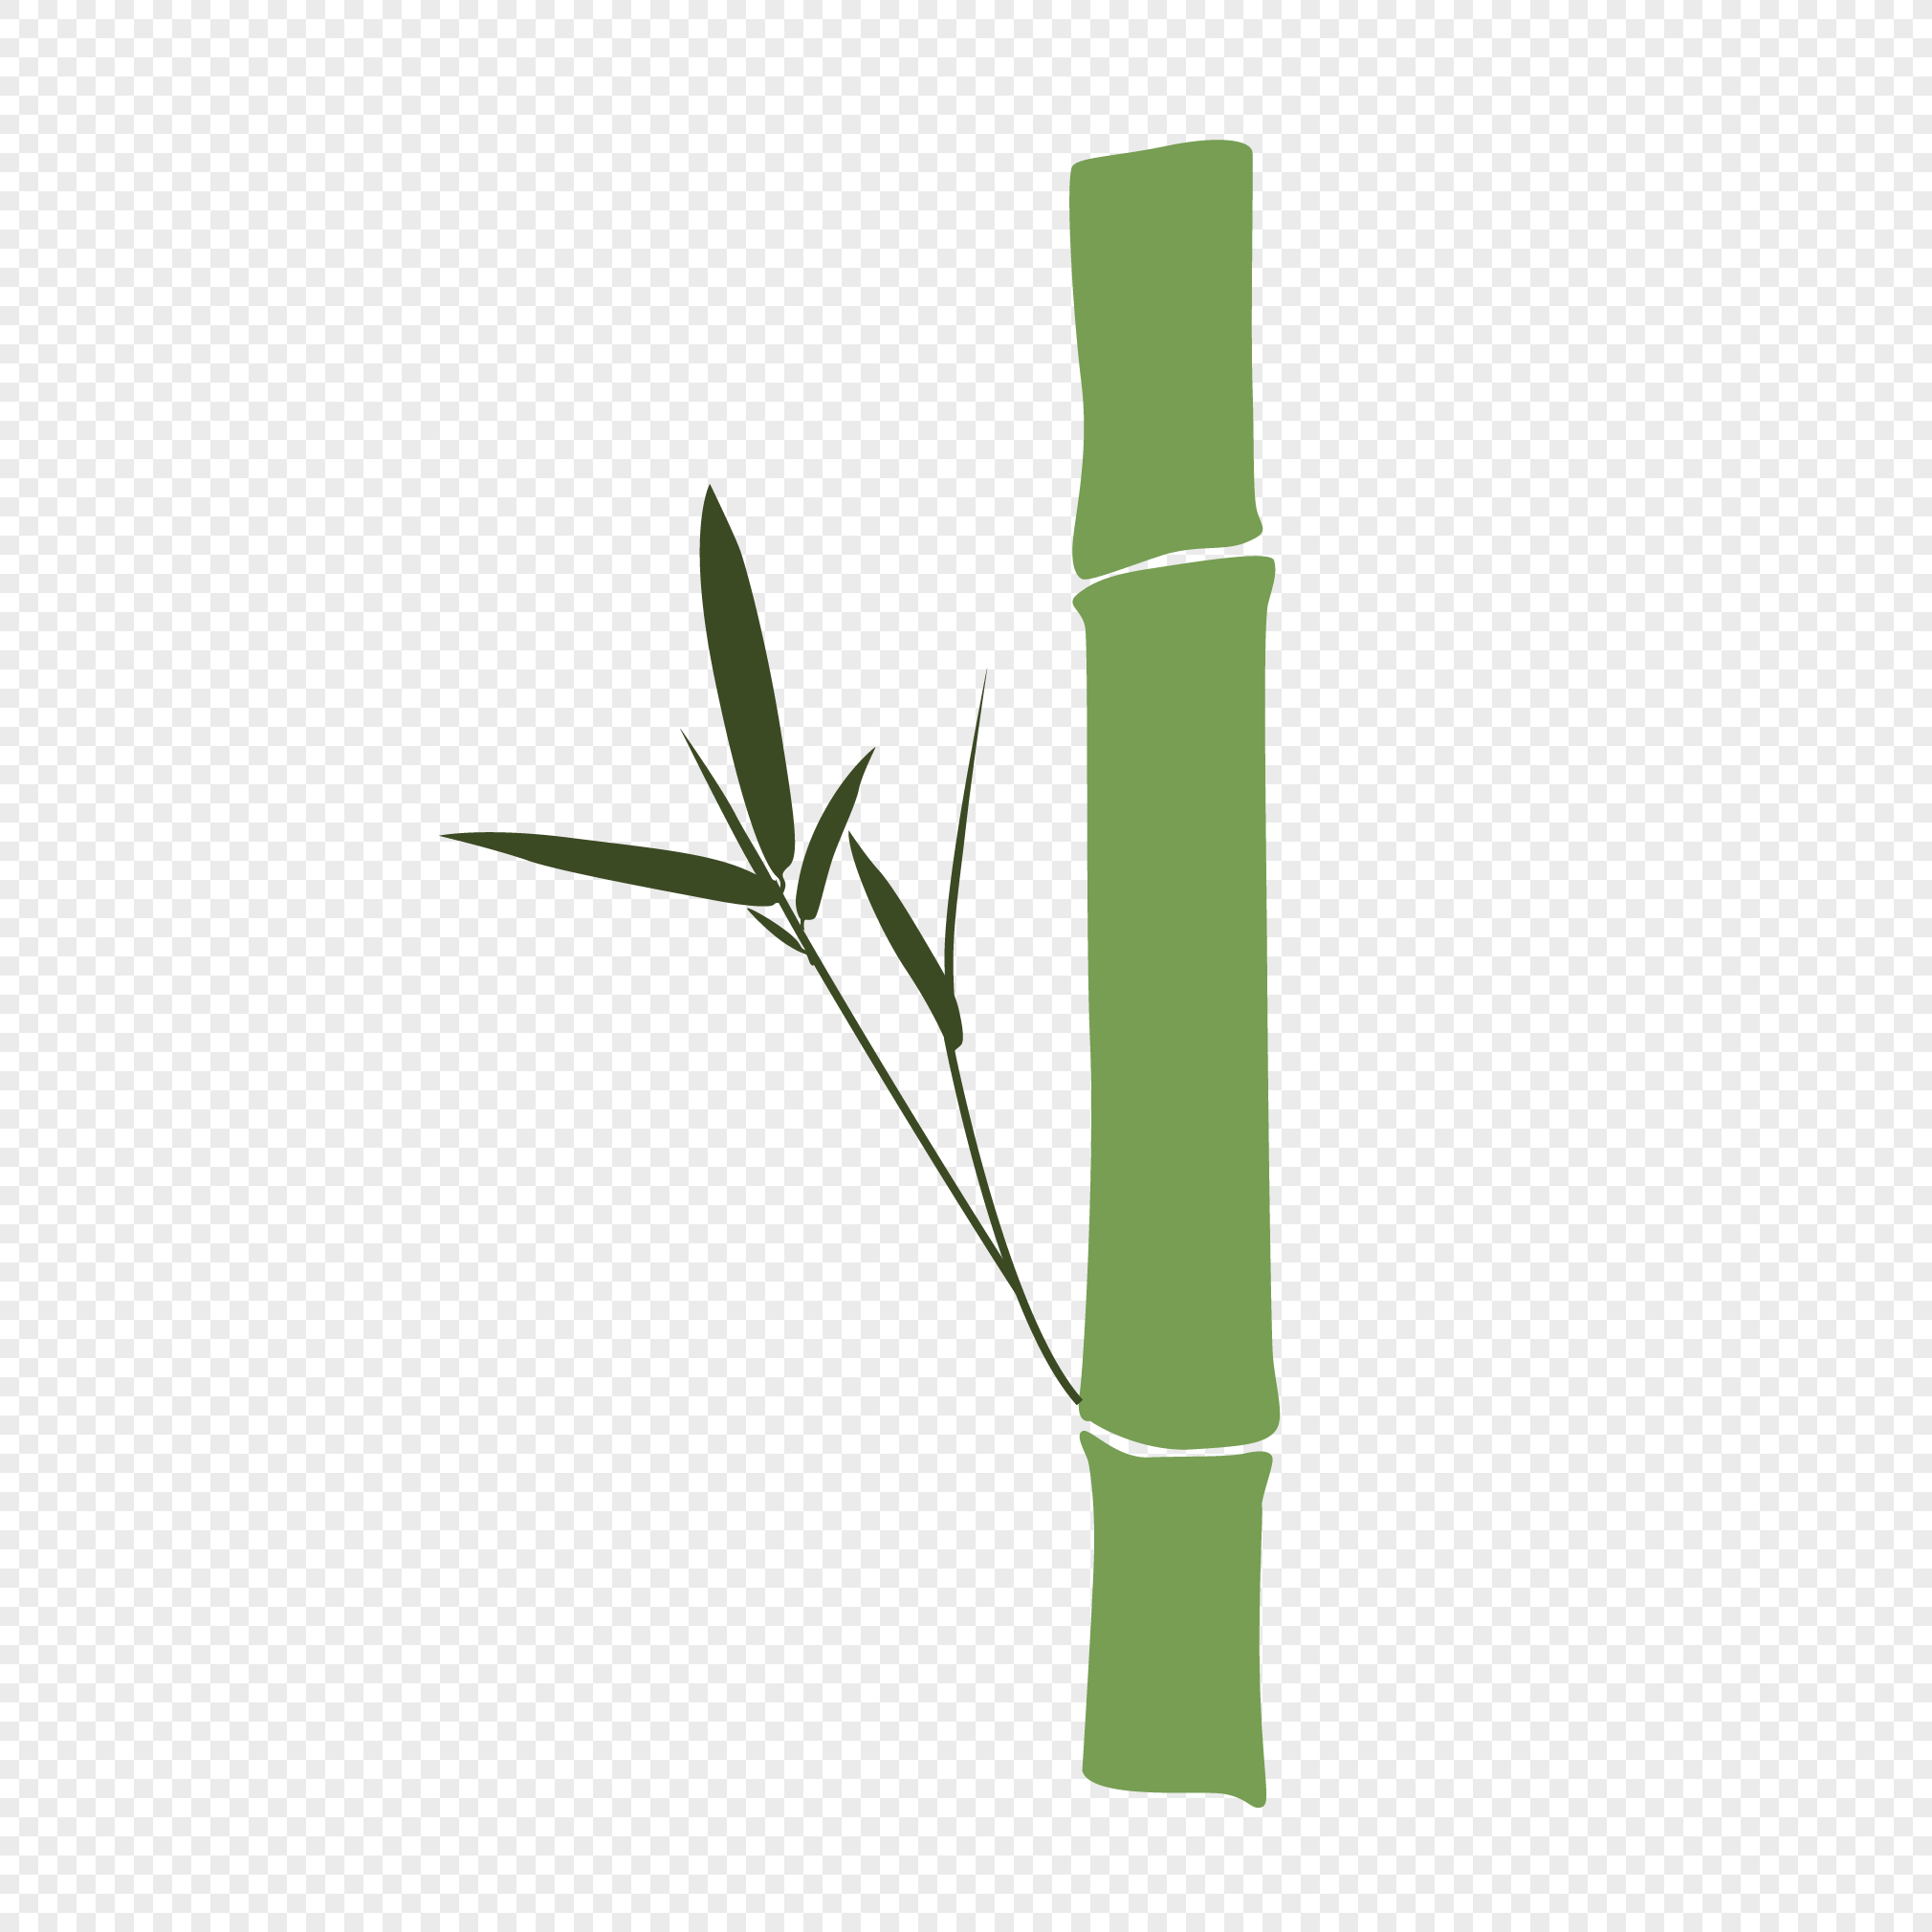 2020x2020 Cyan Bamboo Vector Material Png Image Picture Free Download